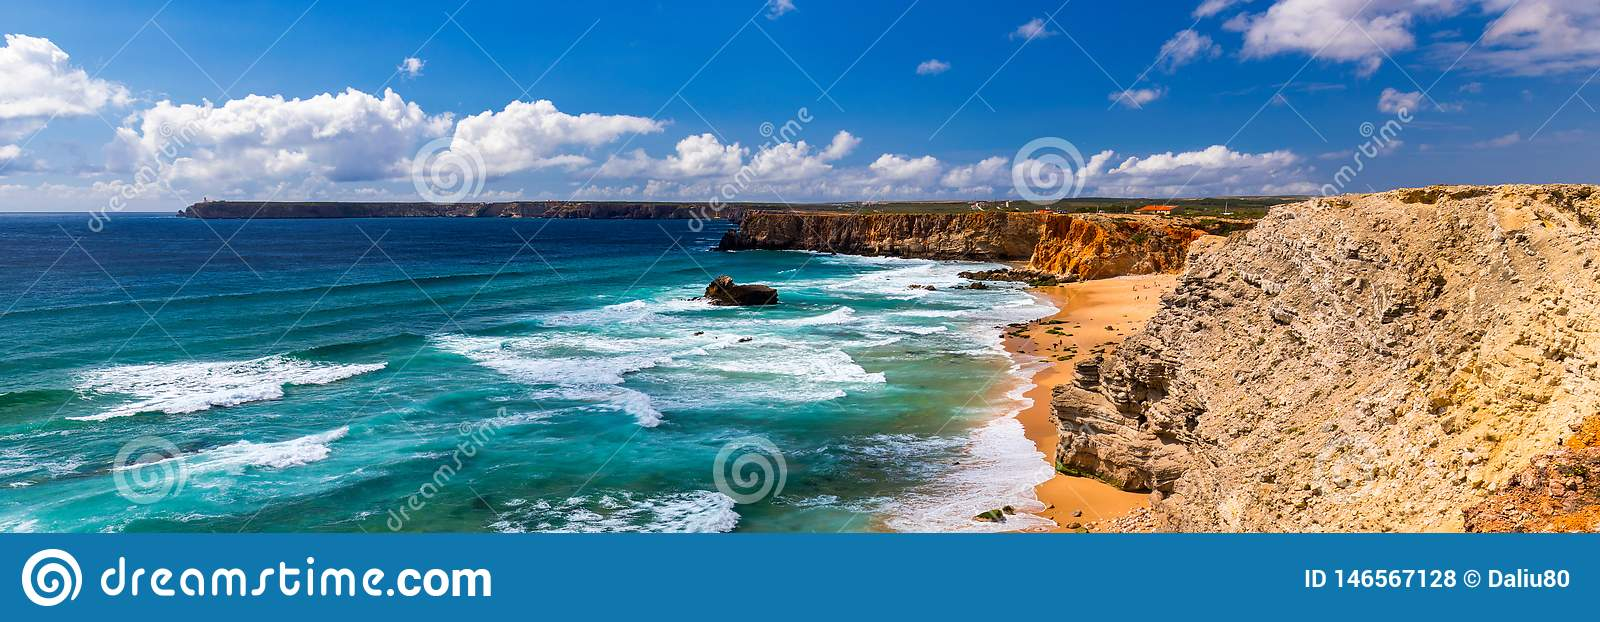 Panorama view of Praia do Tonel (Tonel beach) in Cape Sagres, Algarve, Portugal. Praia Do Tonel, beach located in Alentejo,